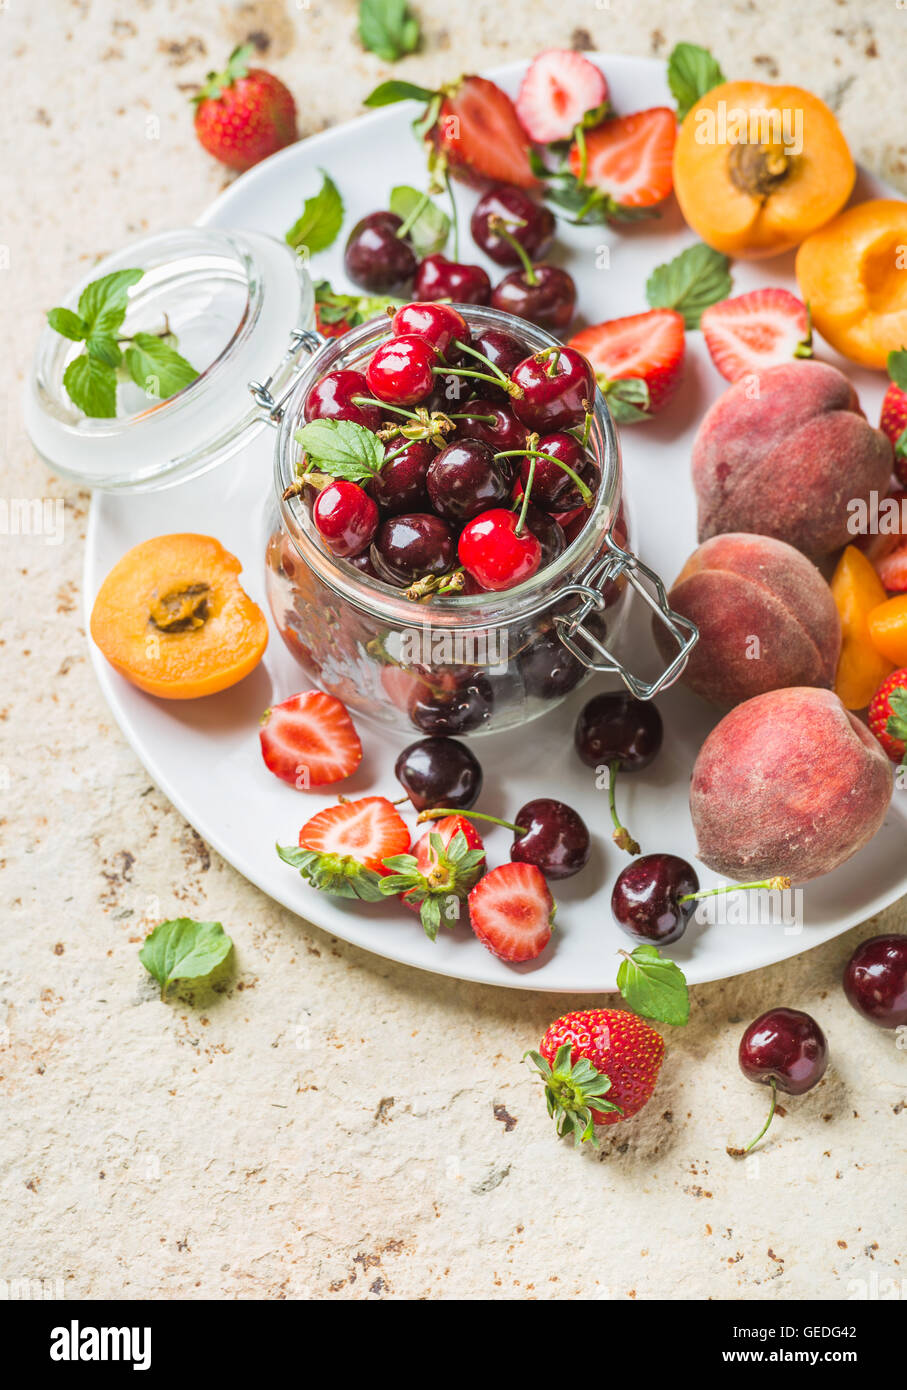 Healthy summer fruit variety. Sweet cherries in glass jar, strawberries, peaches, apricots and mint leaves on white - Stock Image